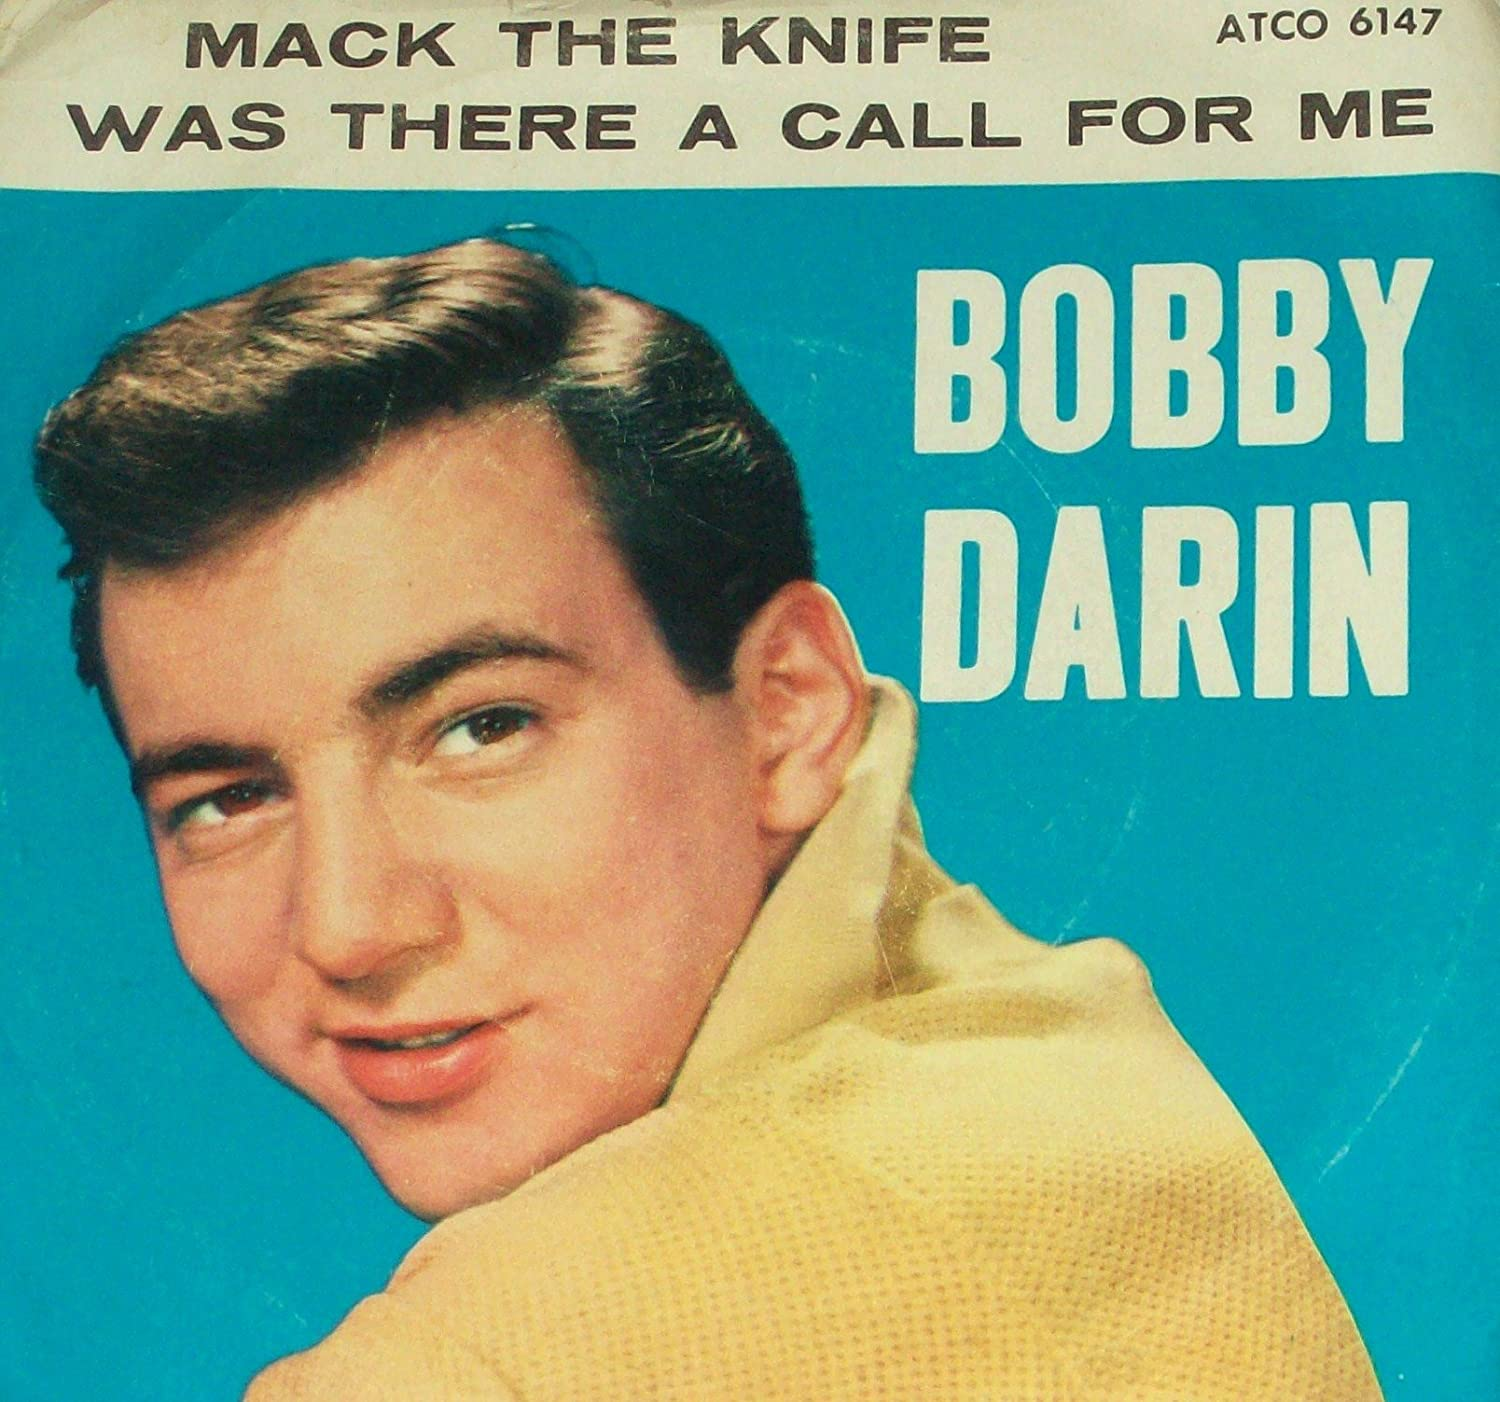 Bobby Selling rankings Darin - Mack The Knife There A 7